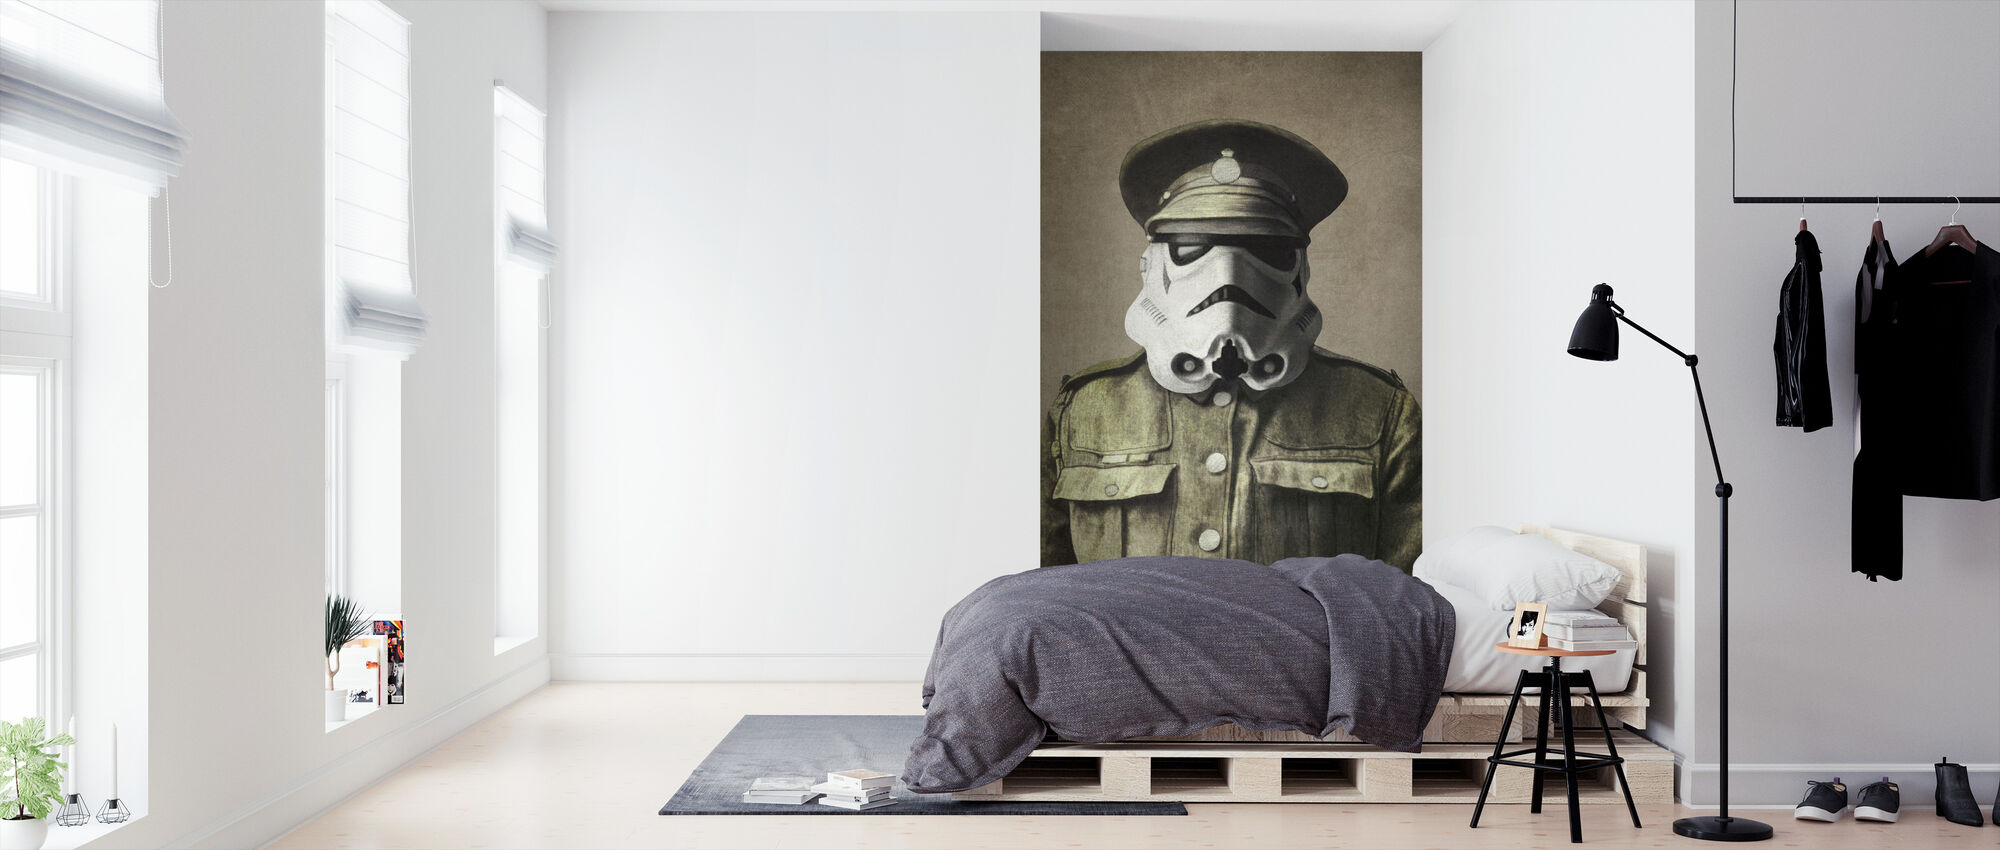 Victorian Wars Sgt. Stormley - Wallpaper - Bedroom